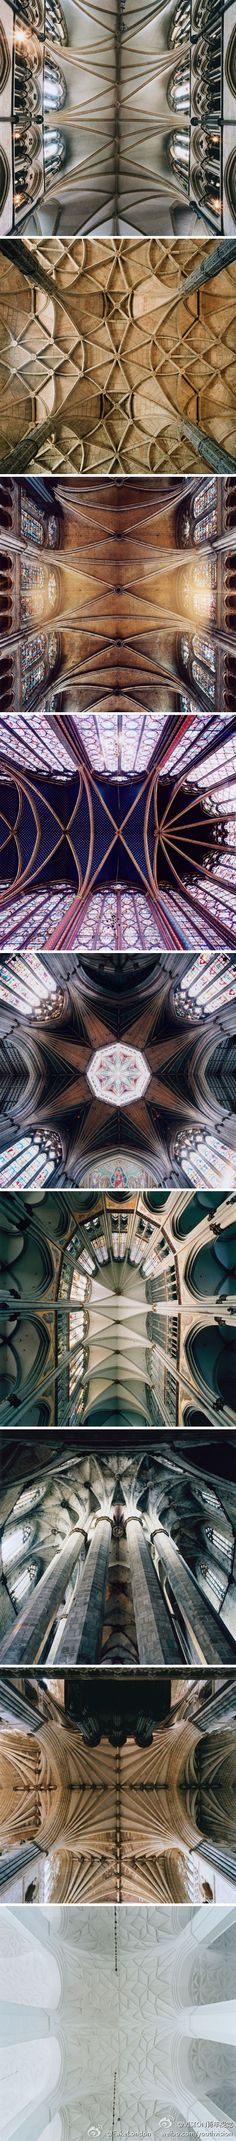 David Stephensen Photography - Heavenly Vaults